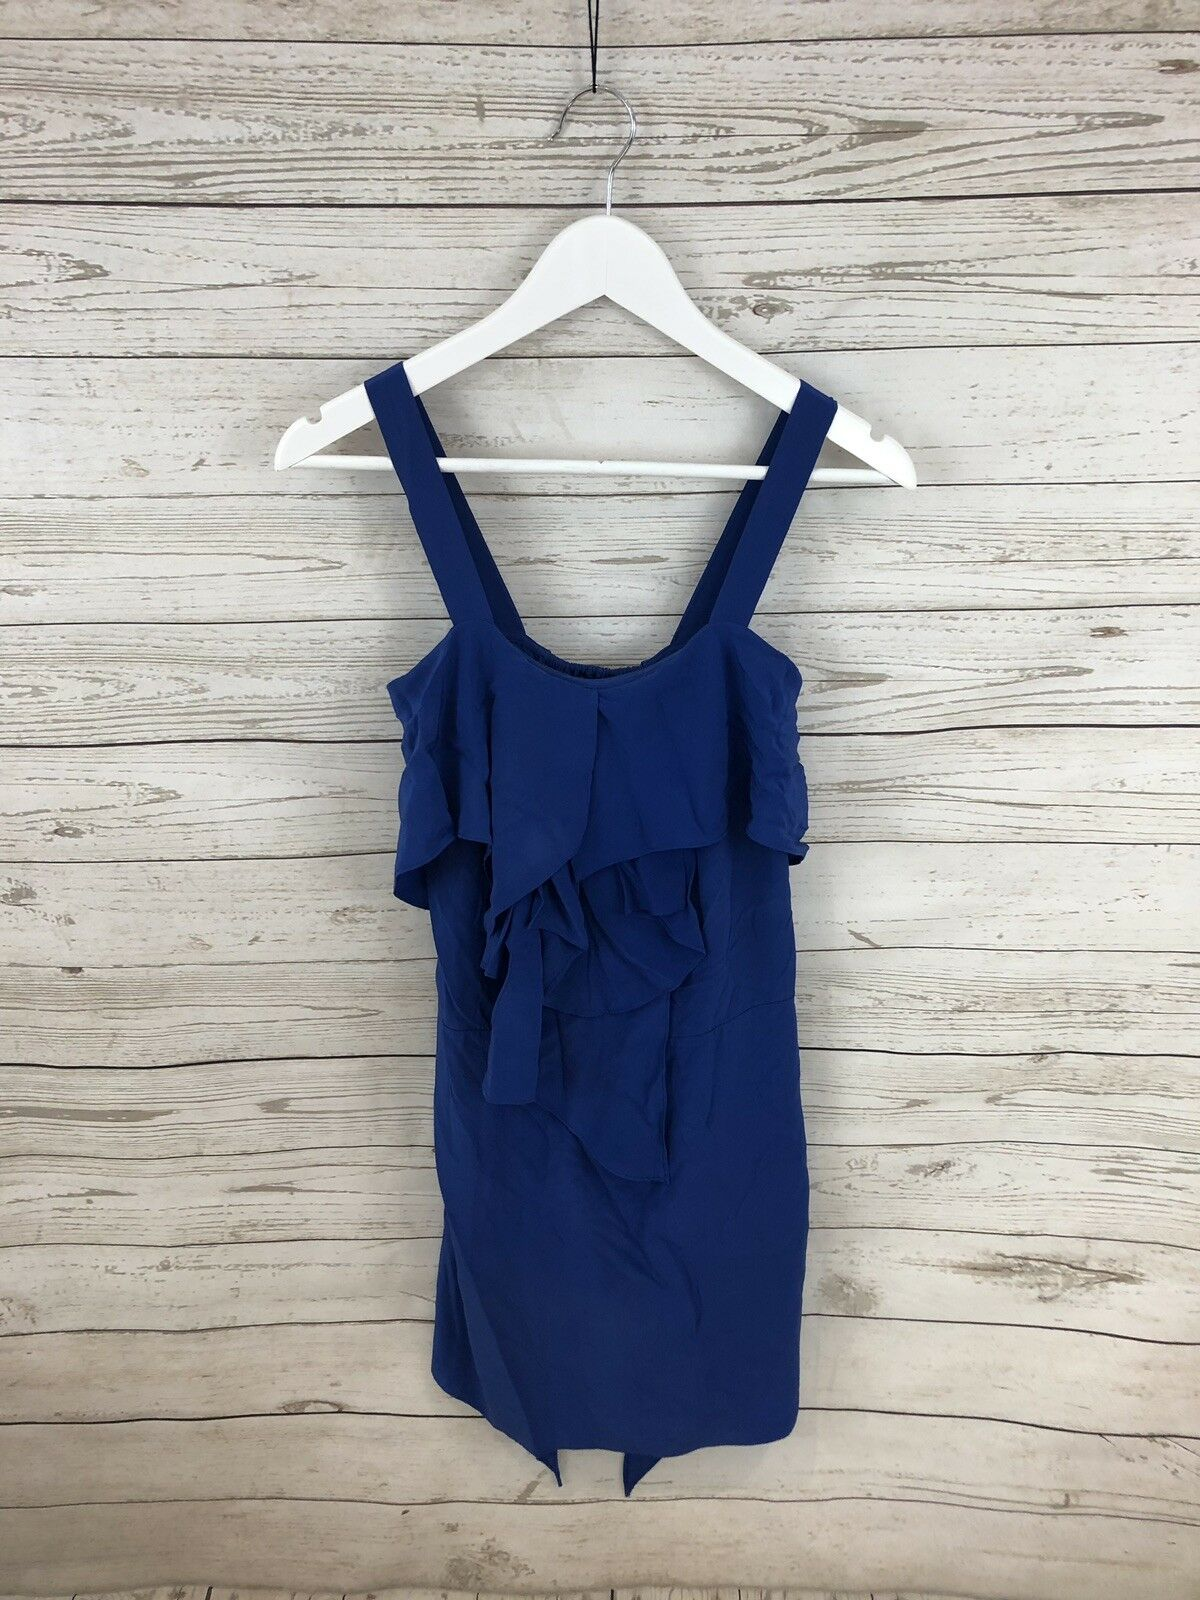 COAST SILK PARTY Dress - Size UK8 - bluee - Great Condition - Women's